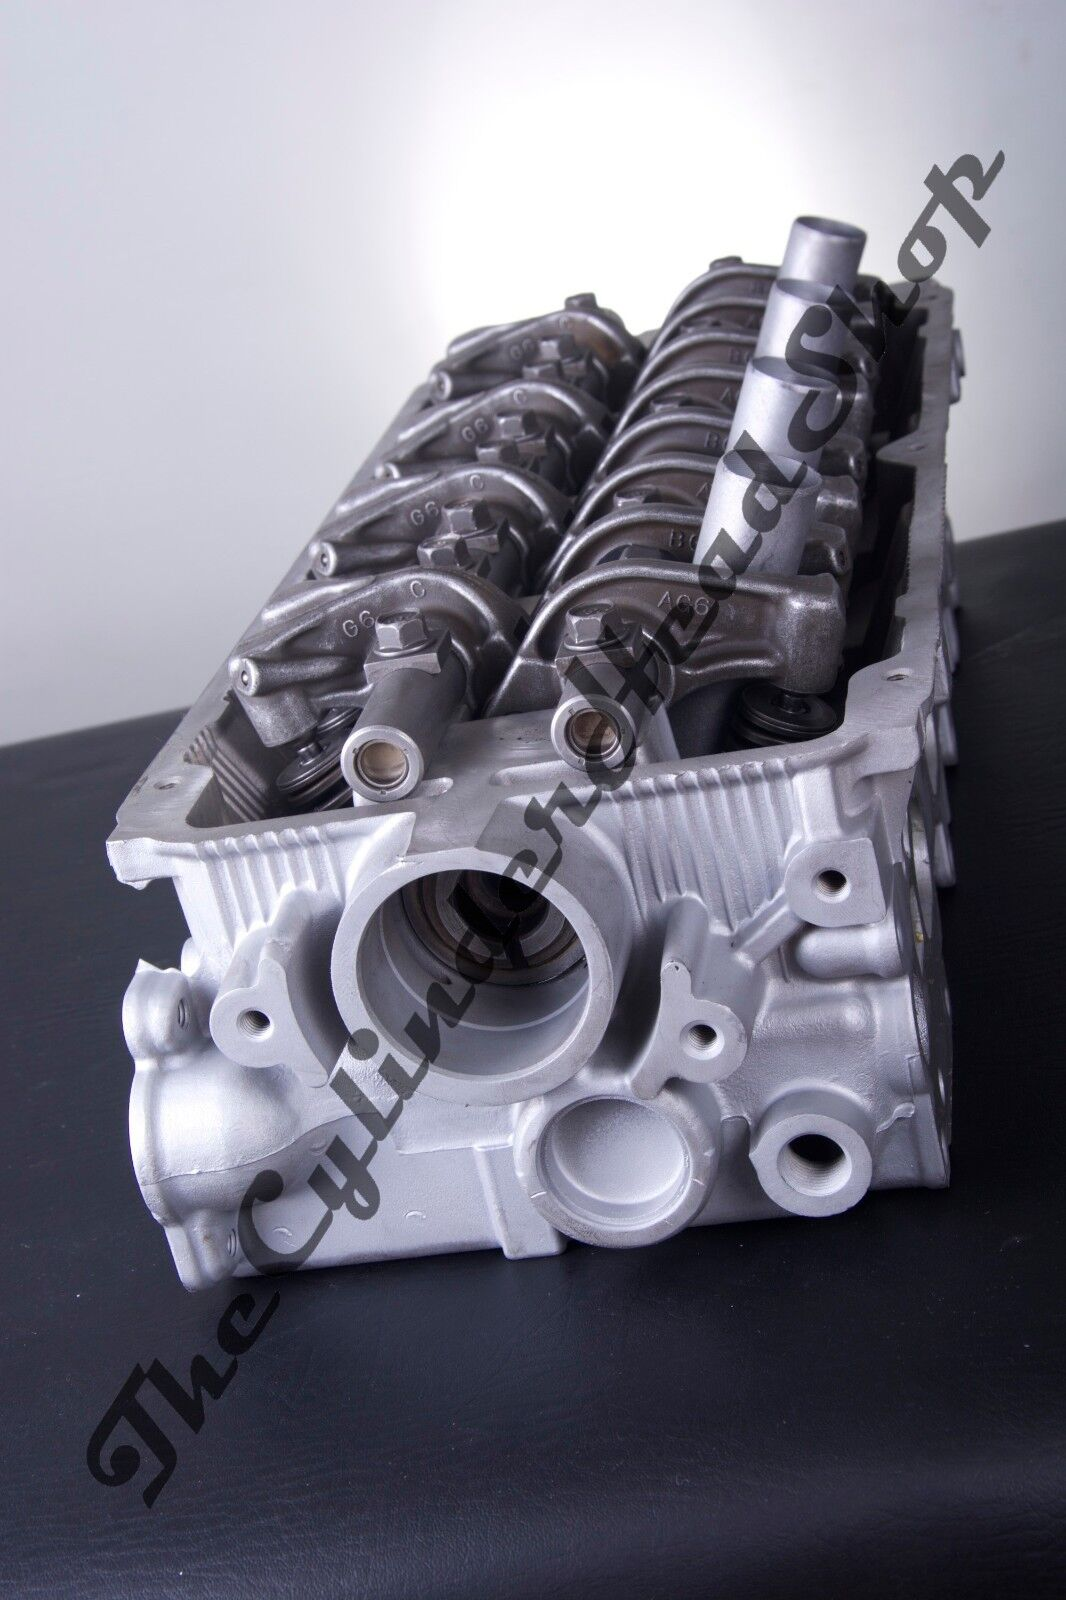 Buy Used Cylinder Heads and Parts from Top-Rated Salvage